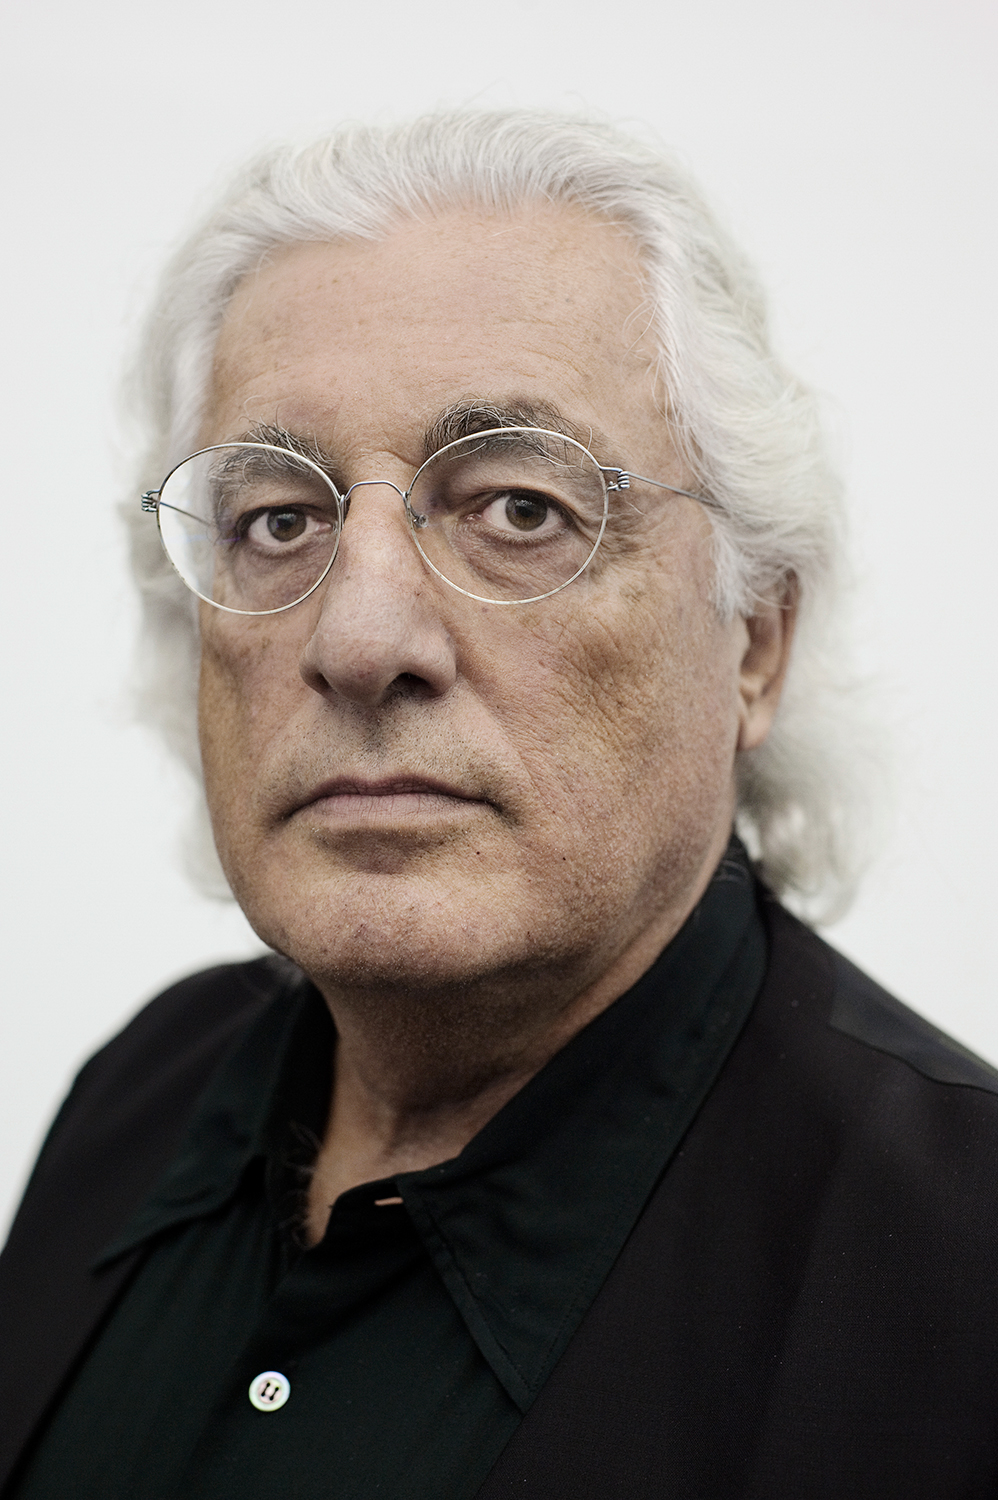 Germano Celant (b. Genoa, 1940) is an Italian art historian, critic and curator, who coined the term